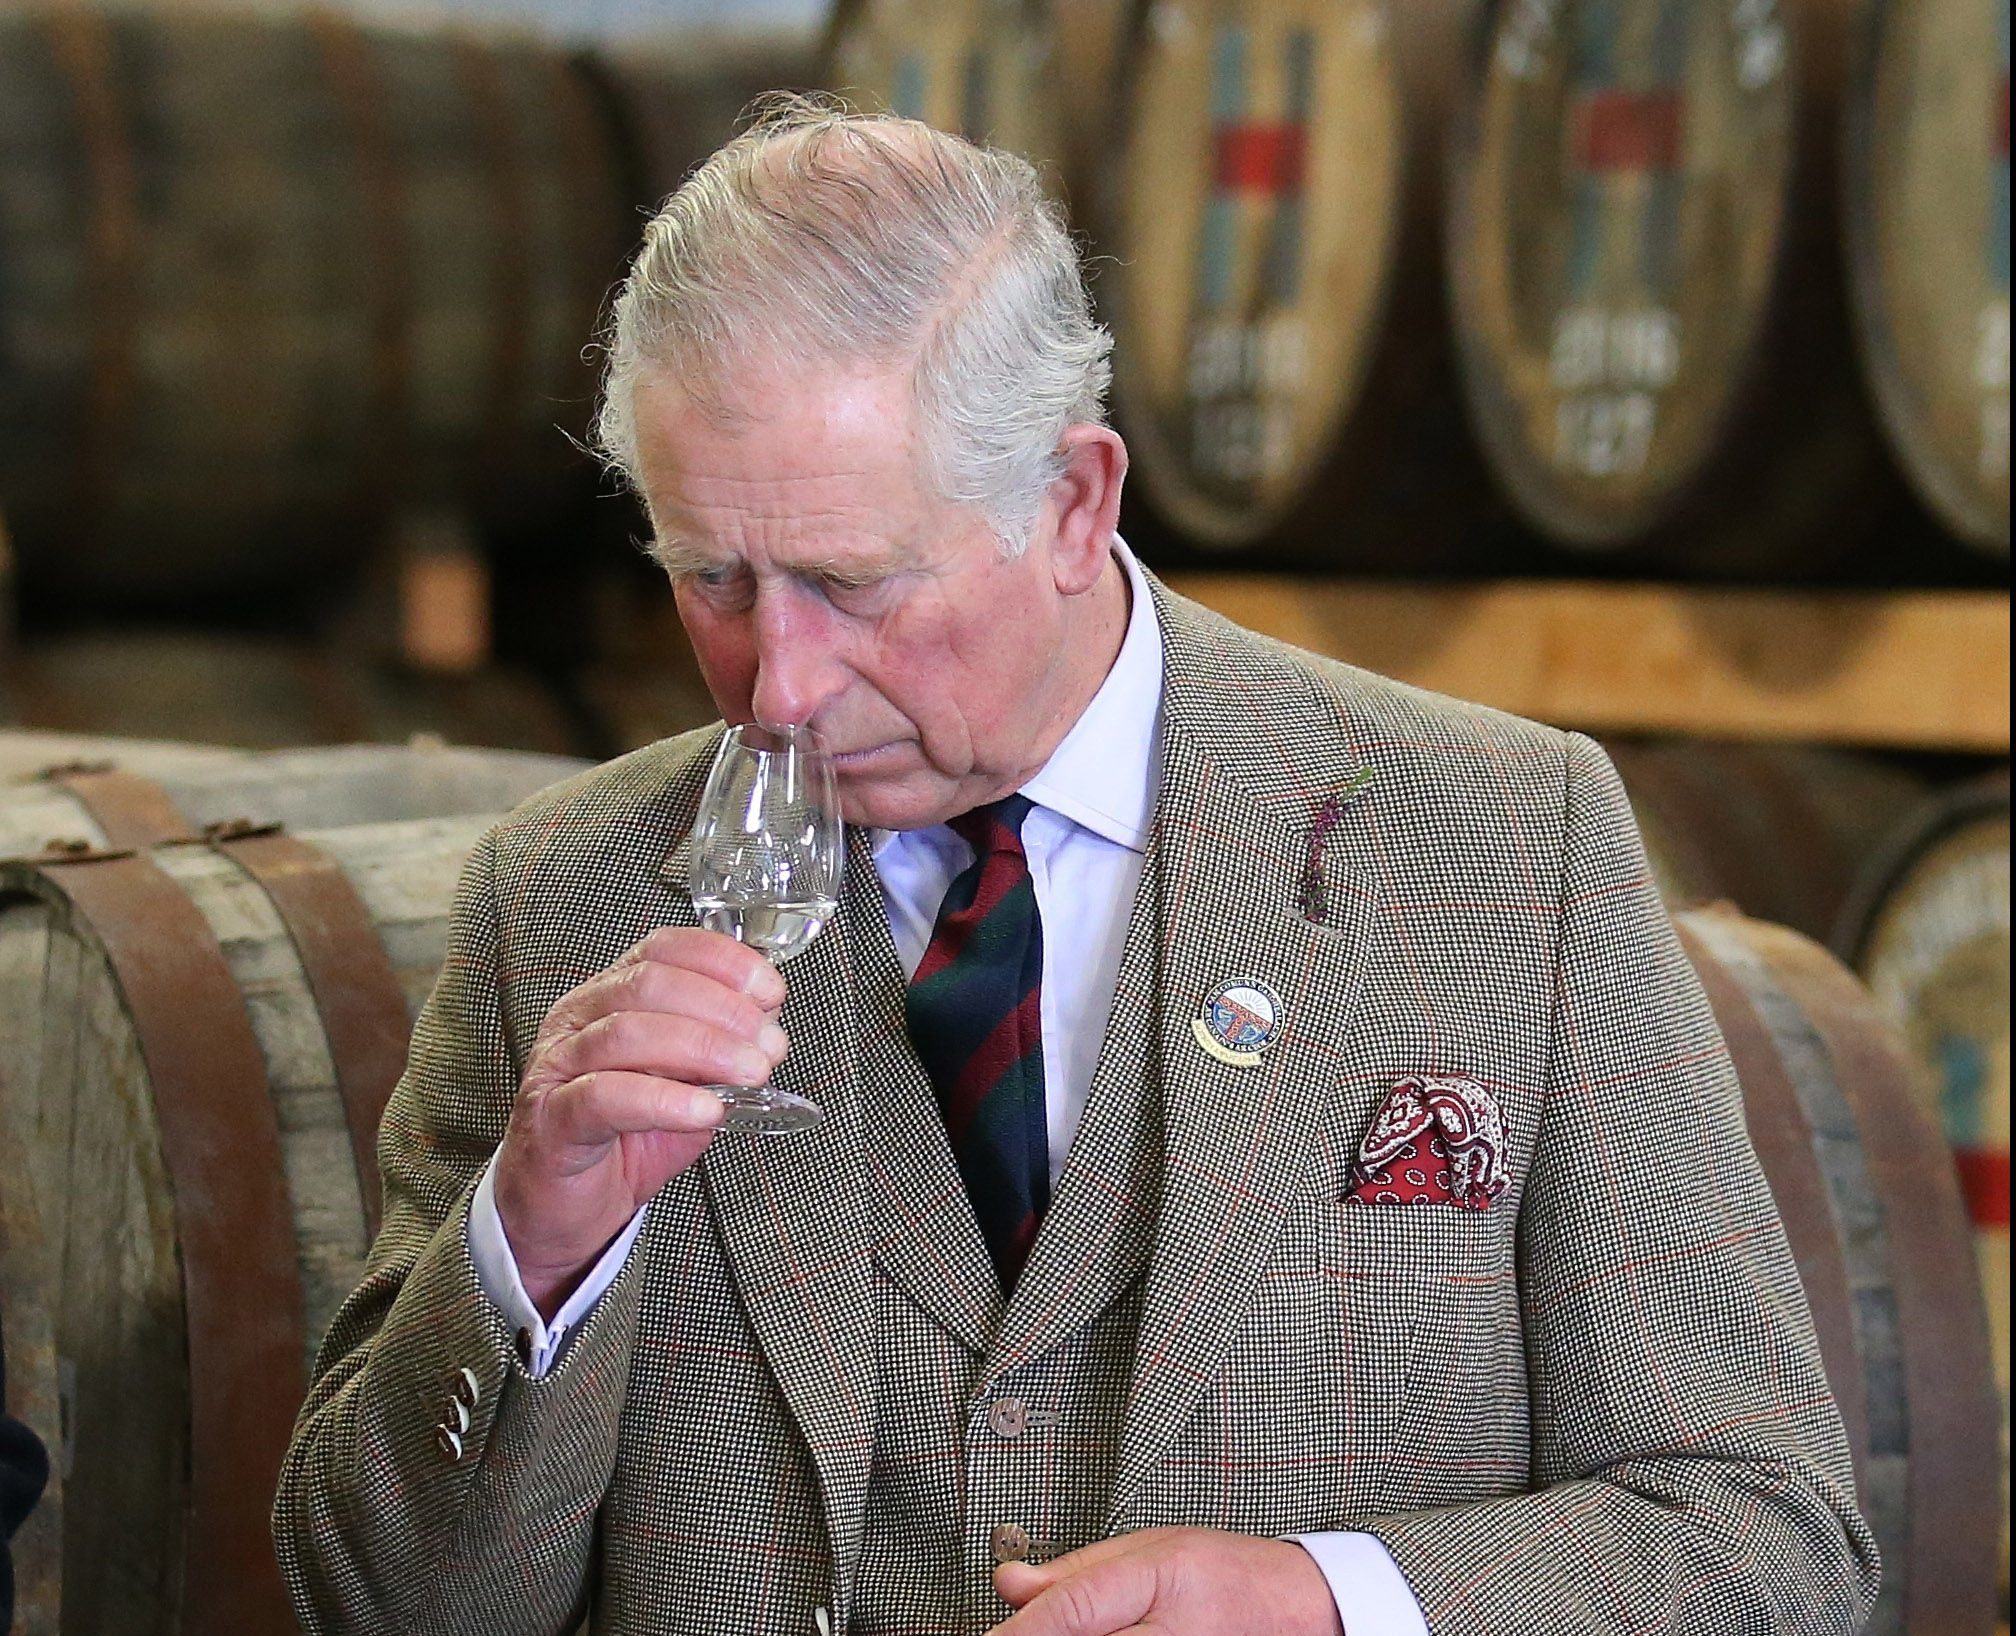 The Prince of Wales, known as the Lord of the Isles while in the Western Isles, noses a malt during a visit to the Isle of Harris Distillery